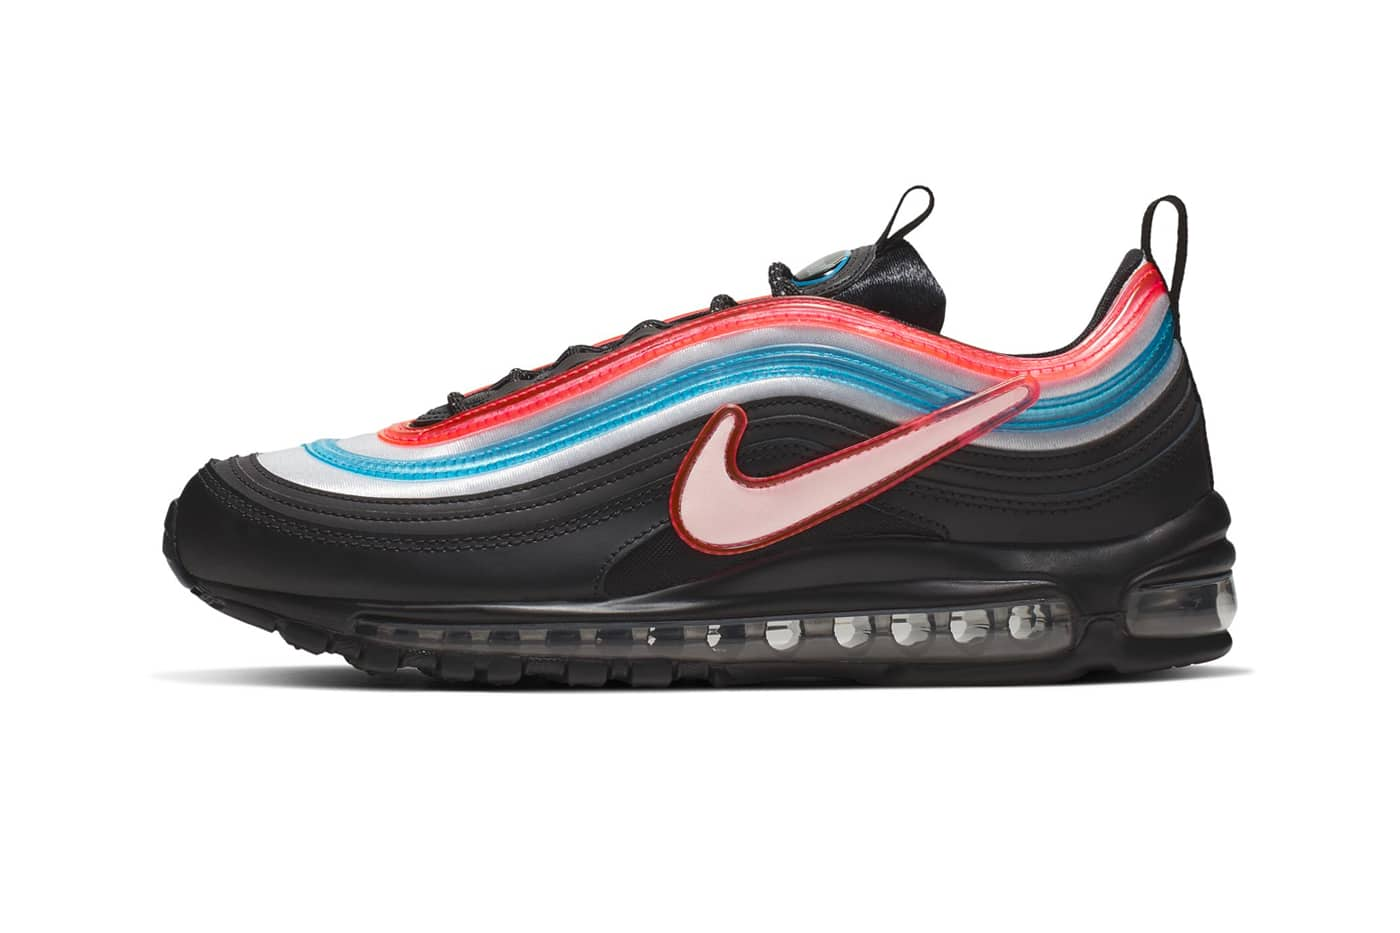 Nike Air Max 97 Neon Seoul te koop @ Air Max Day 2019